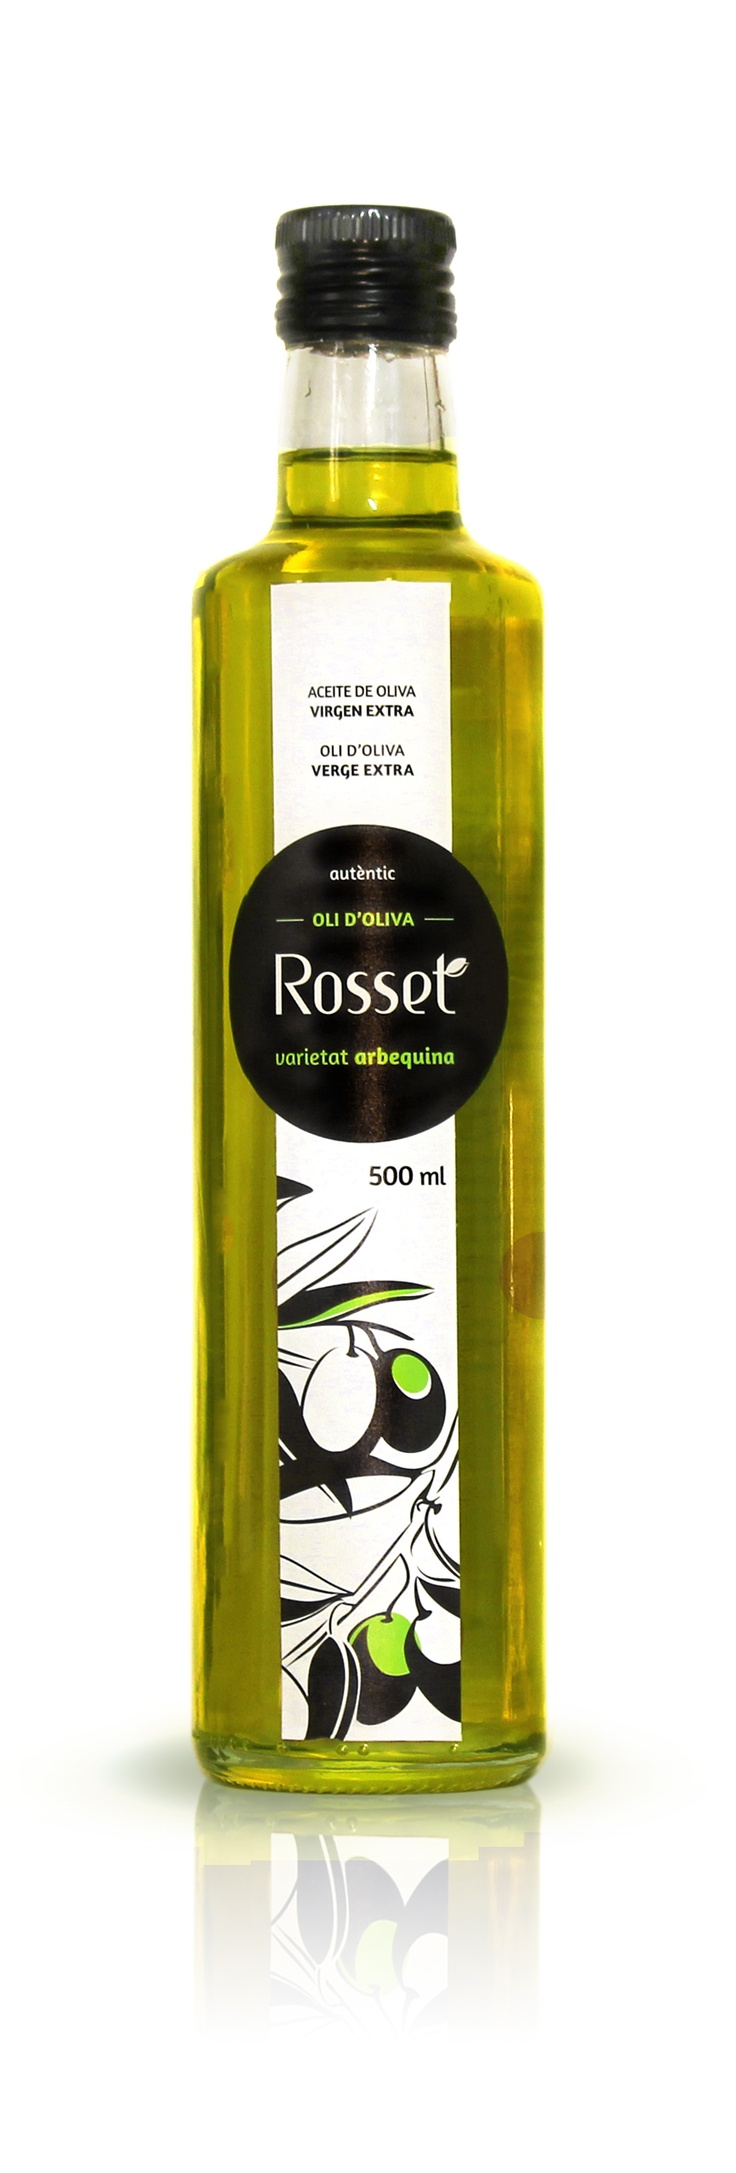 Oli d'oliva verge extra ARBEQUINA, Aceite de oliva virgen extra ARBEQUINA, Extra Virgin Olive Oil of Arbequina olives